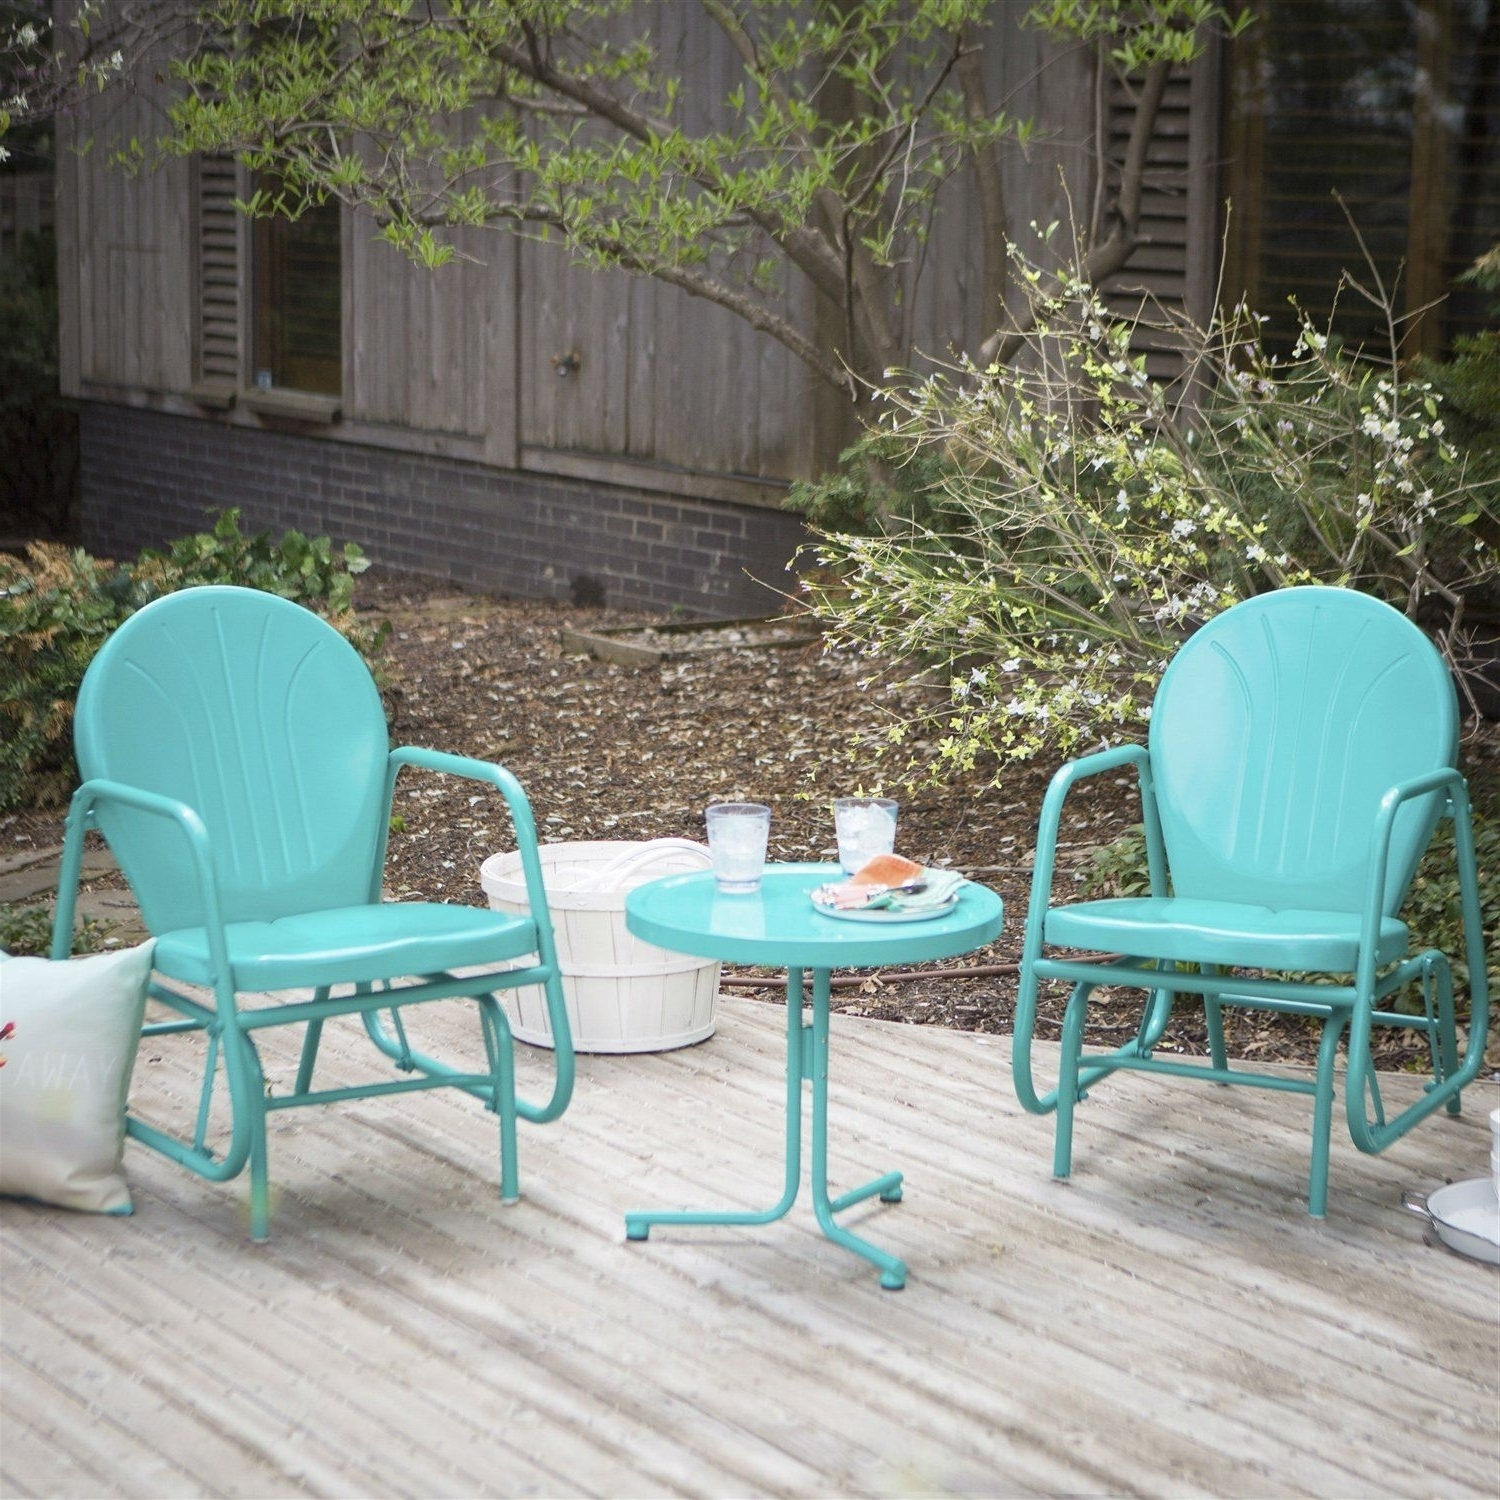 Best And Newest Outdoor 3 Piece Retro Turquoise Blue Patio Furniture Glider Chair Within Patio Conversation Sets With Glider (View 3 of 20)